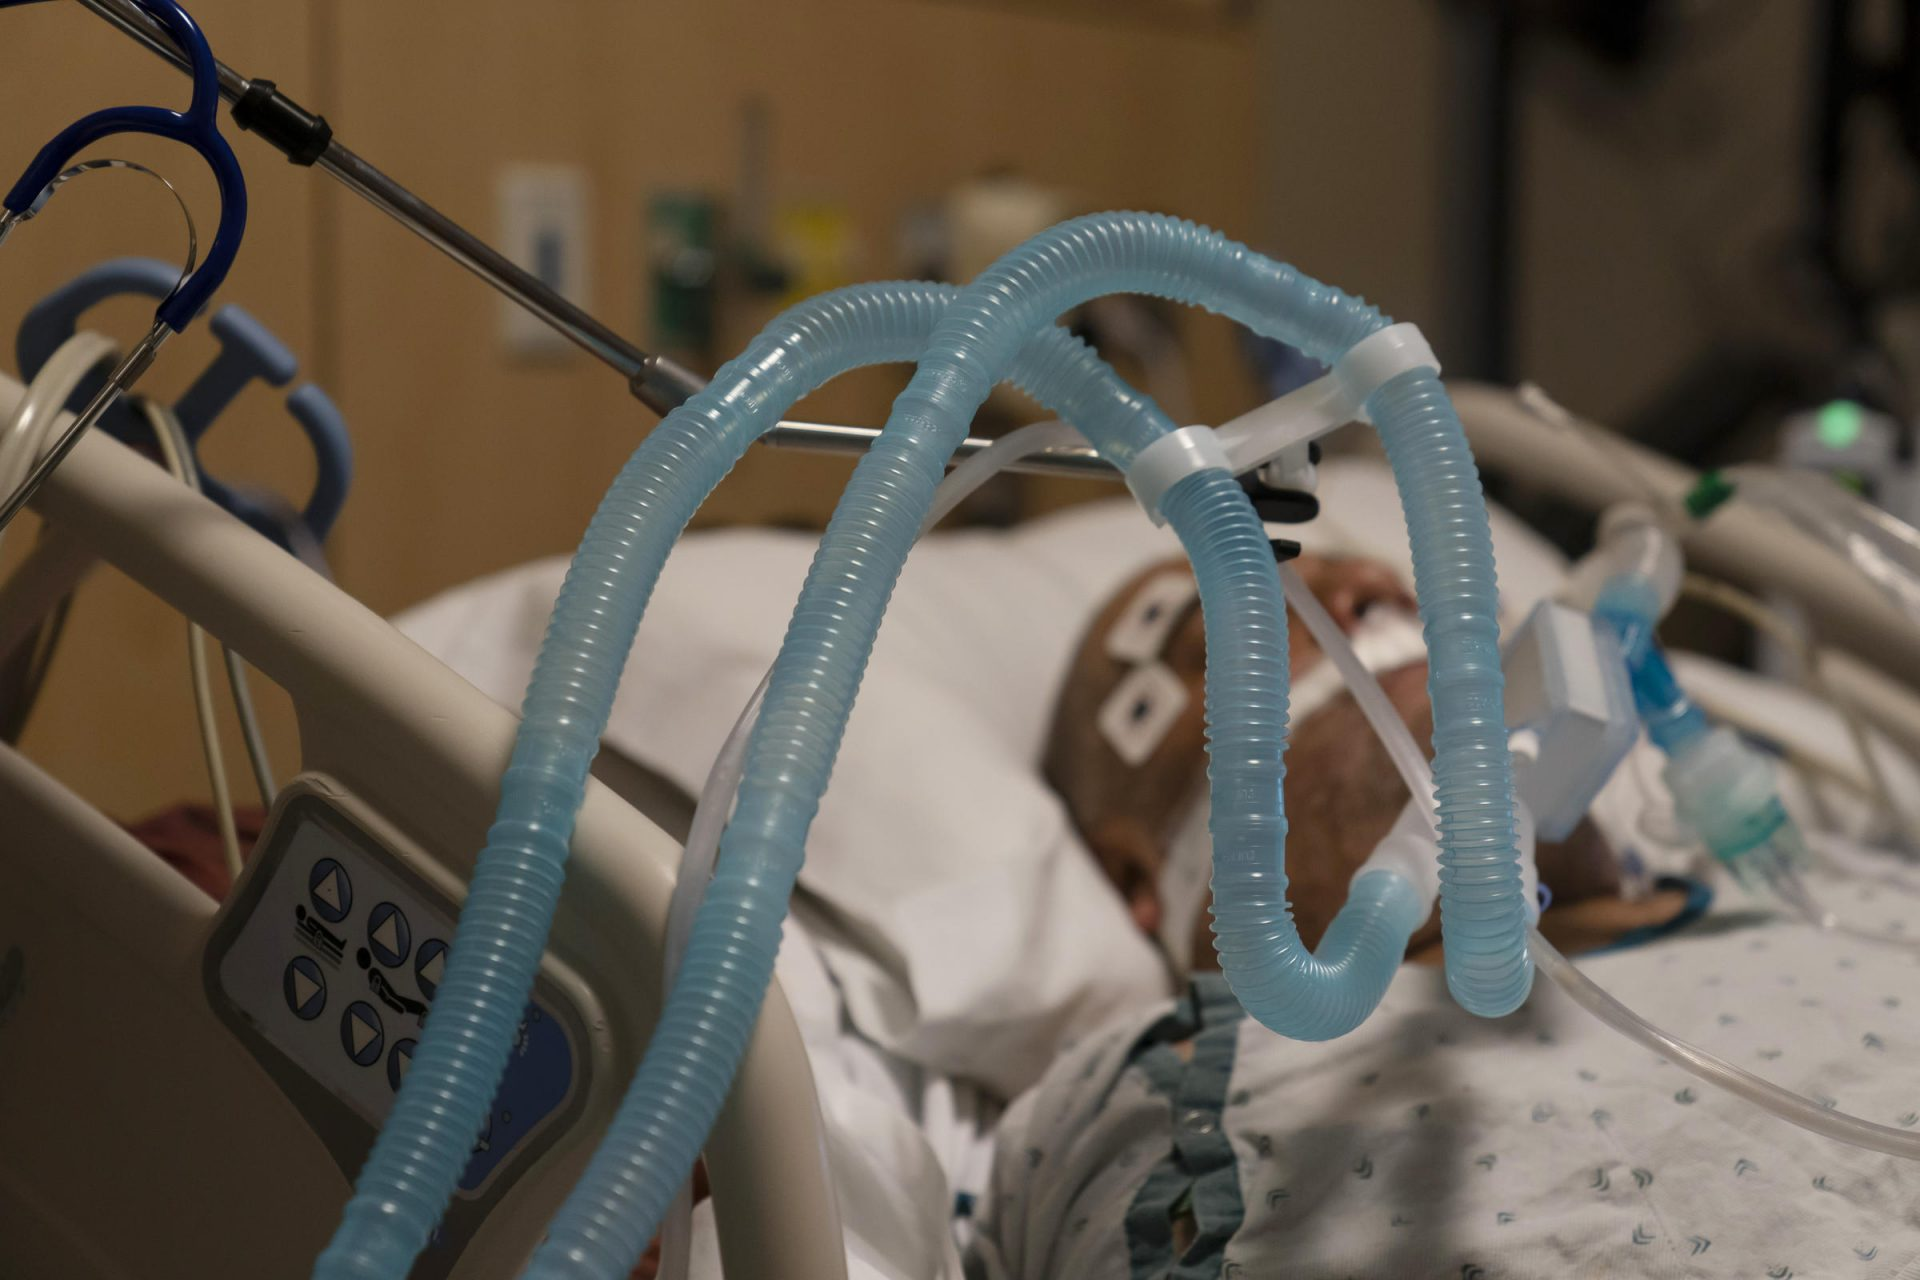 FILE PHOTO: In this Nov. 19, 2020, file photo, ventilator tubes are attached to a COVID-19 patient at Providence Holy Cross Medical Center in the Mission Hills section of Los Angeles.